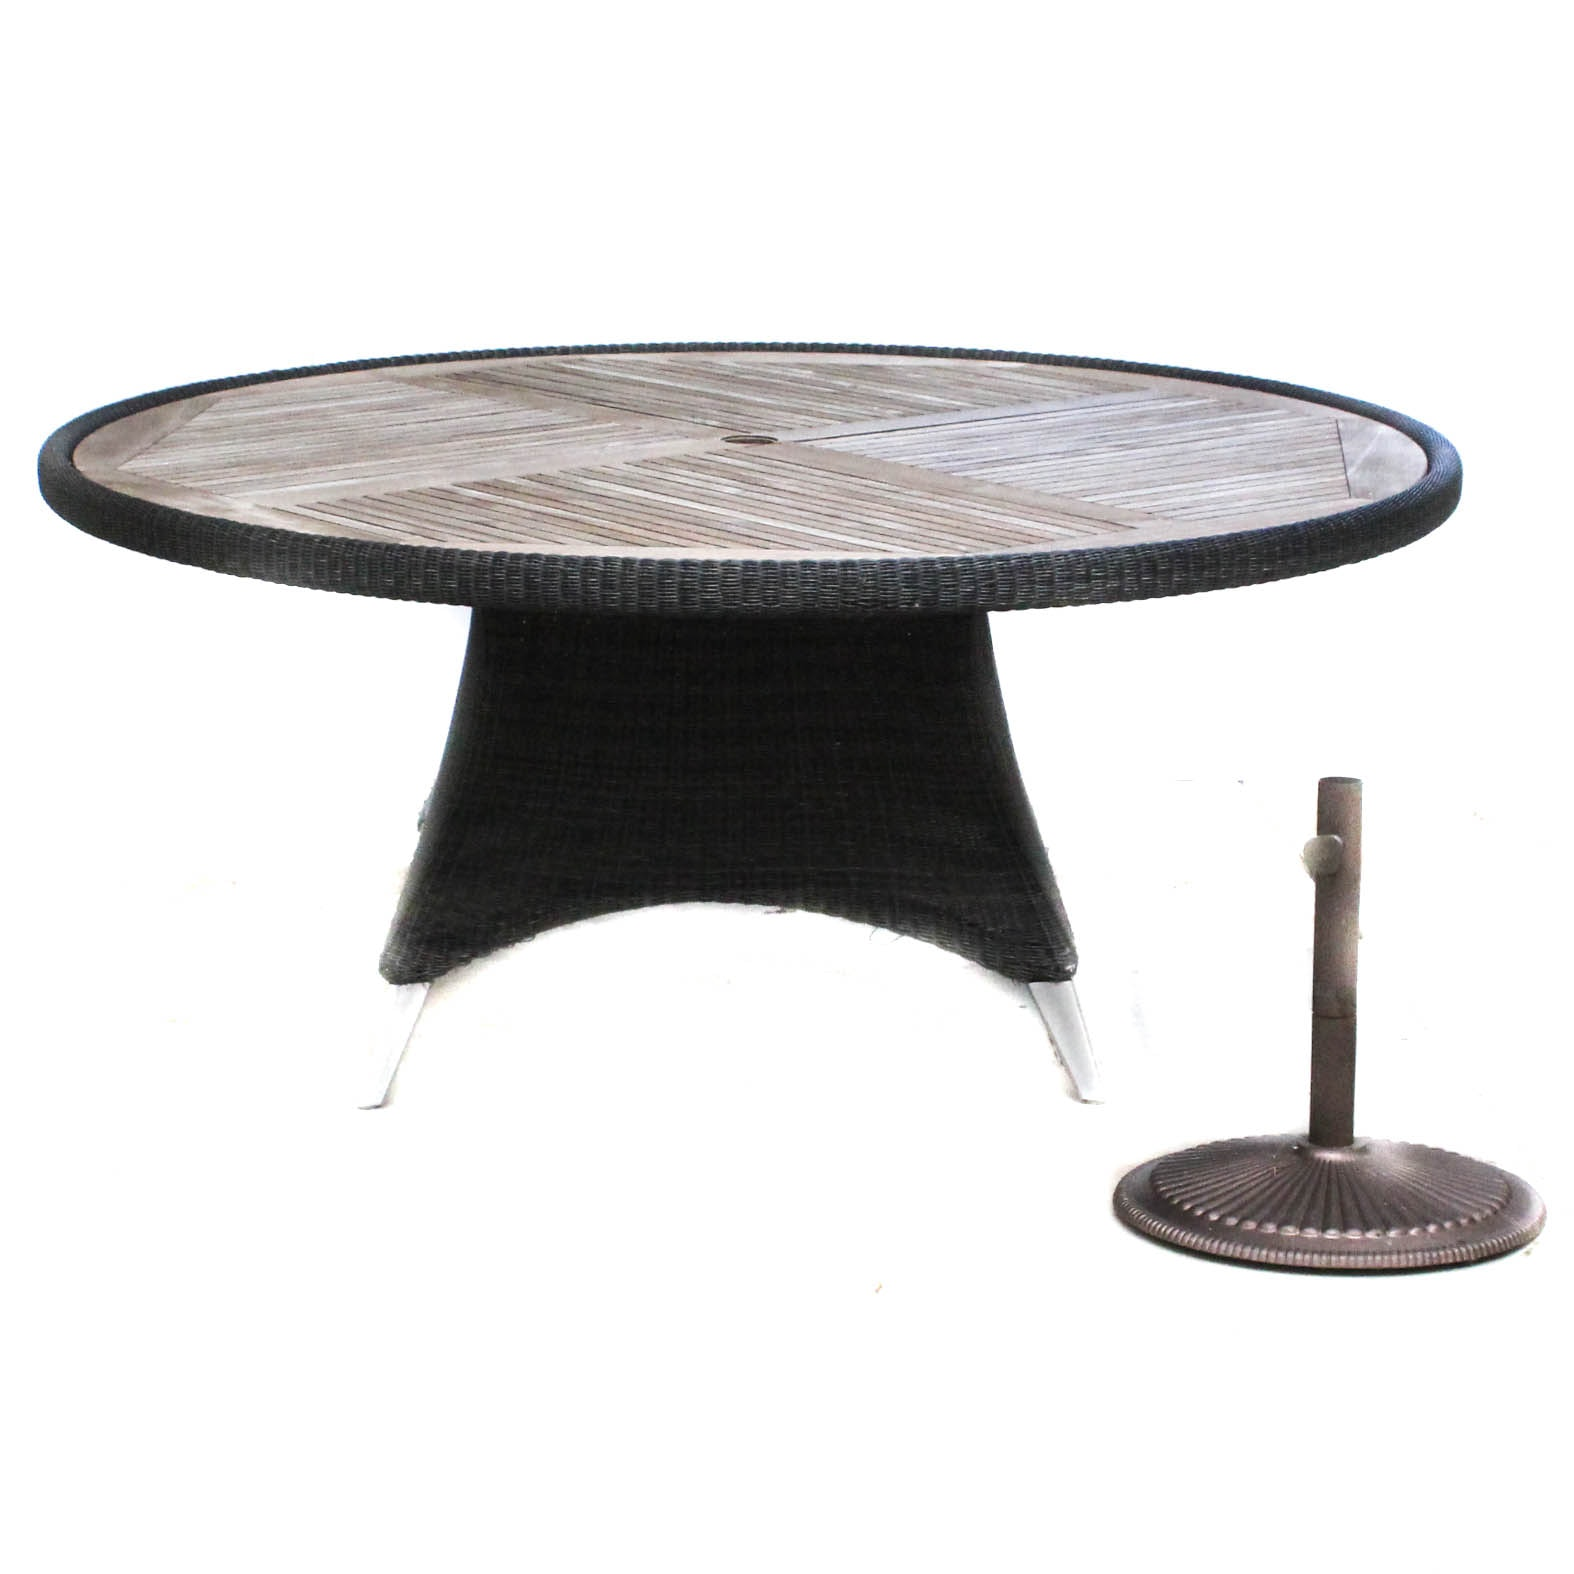 Frontgate Patio Table with Umbrella